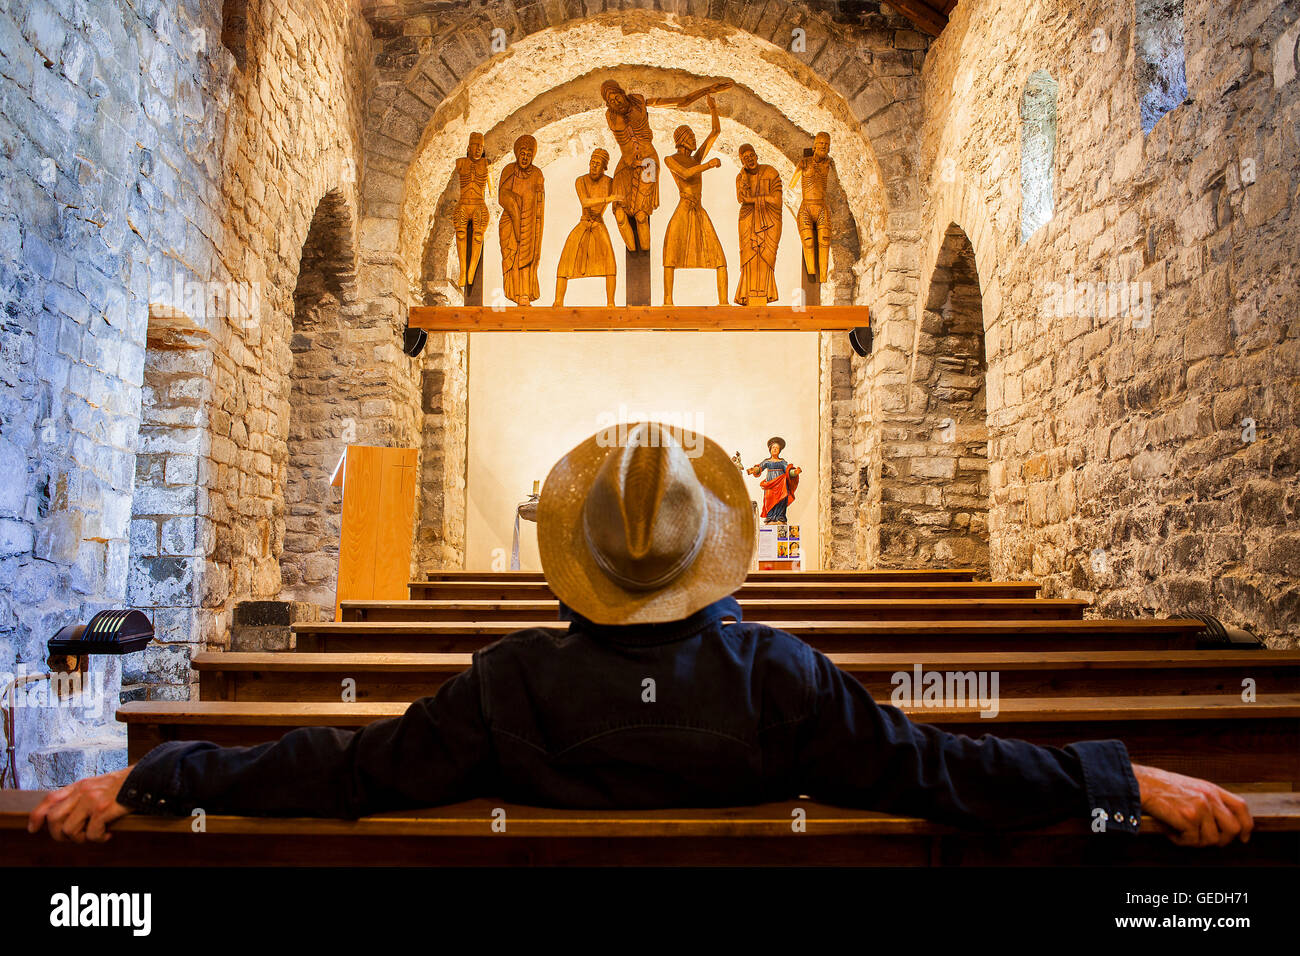 Sculptoric group (s. XII).Santa Eulàlia Church.Romanesque church. Erill la Vall. Boí valley. Catalonia. - Stock Image